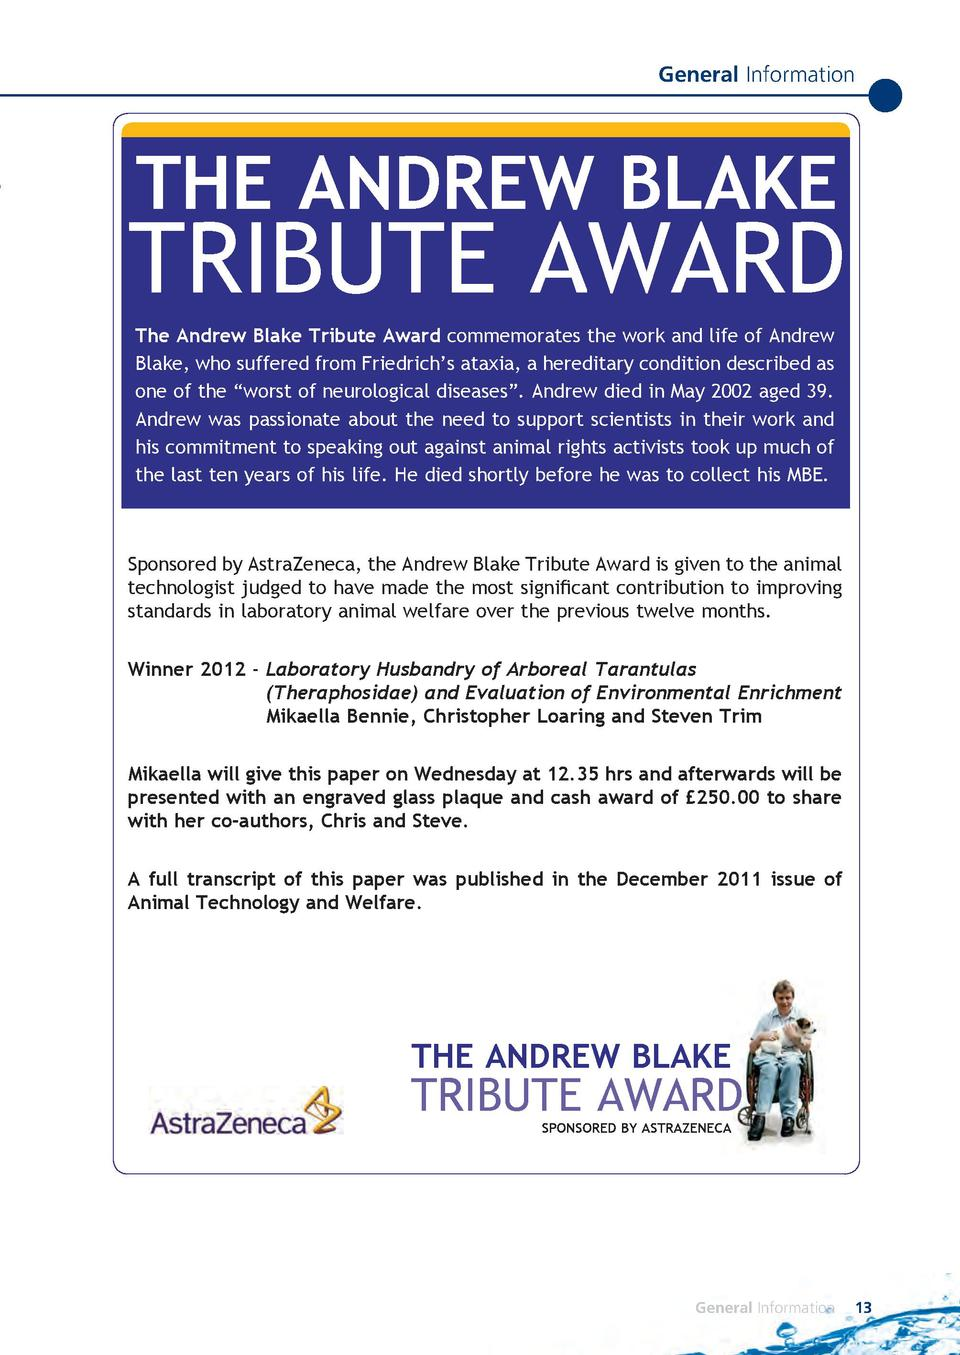 General Information  THE ANDREW BLAKE  TRIBUTE AWARD The Andrew Blake Tribute Award commemorates the work and life of Andr...